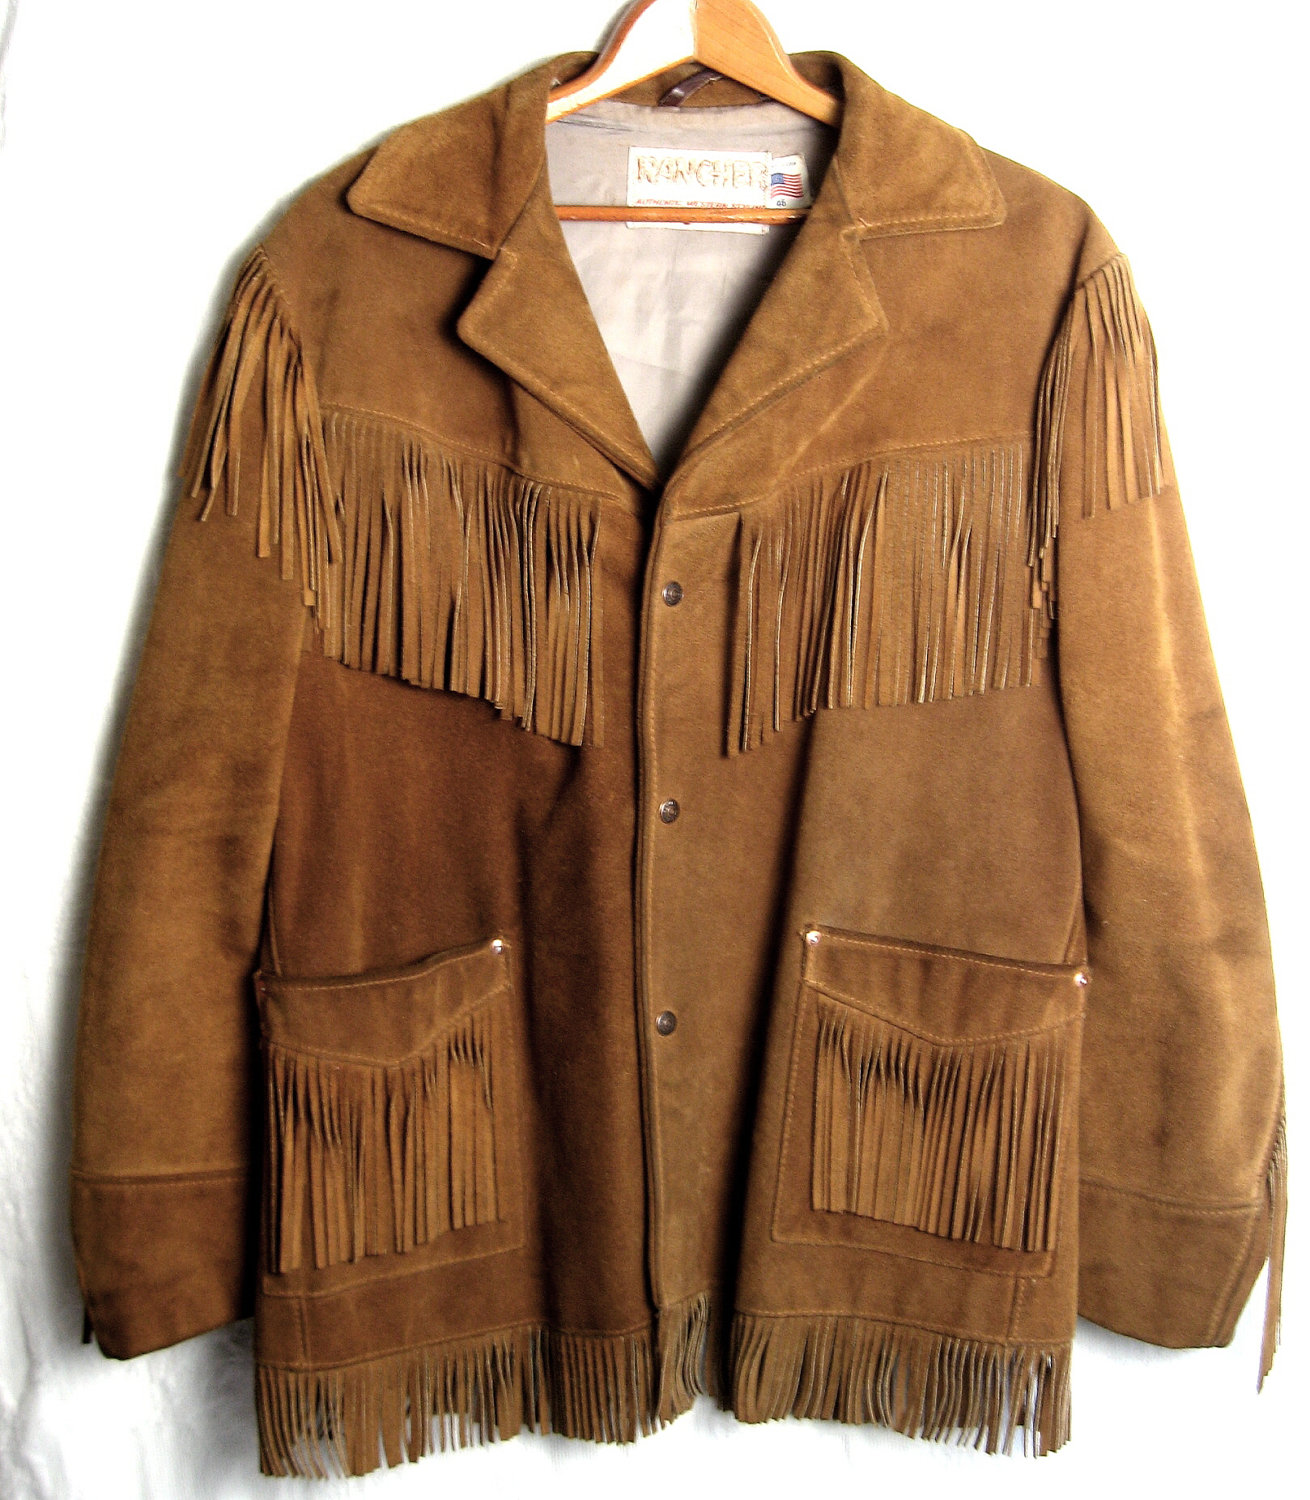 1970s mens fringe jacket1970s Vintage Mens Leather Suede Fringed Jacket by EndlessAlley 4pf5P9iw